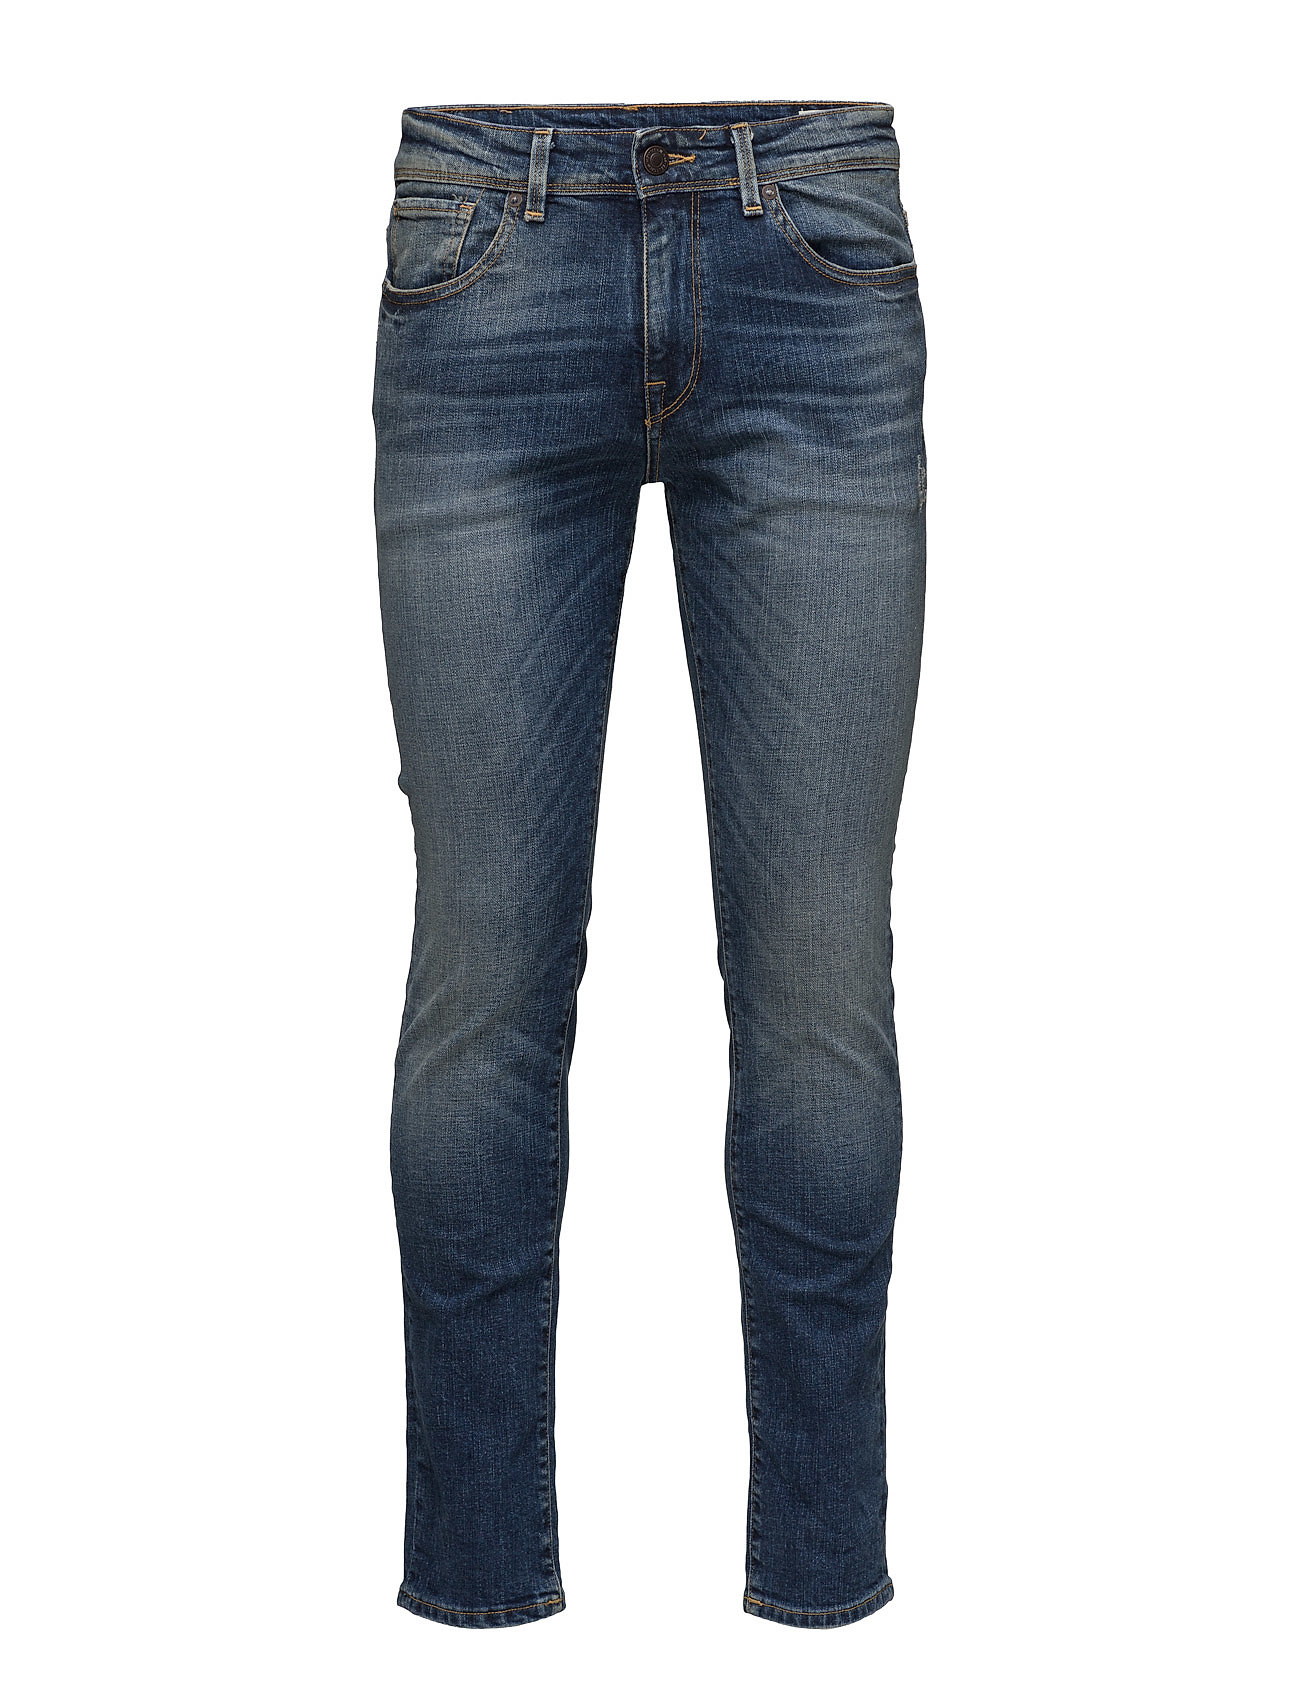 selected homme – Shnslim-leon 1428 mid.blue st jeans sts fra boozt.com dk